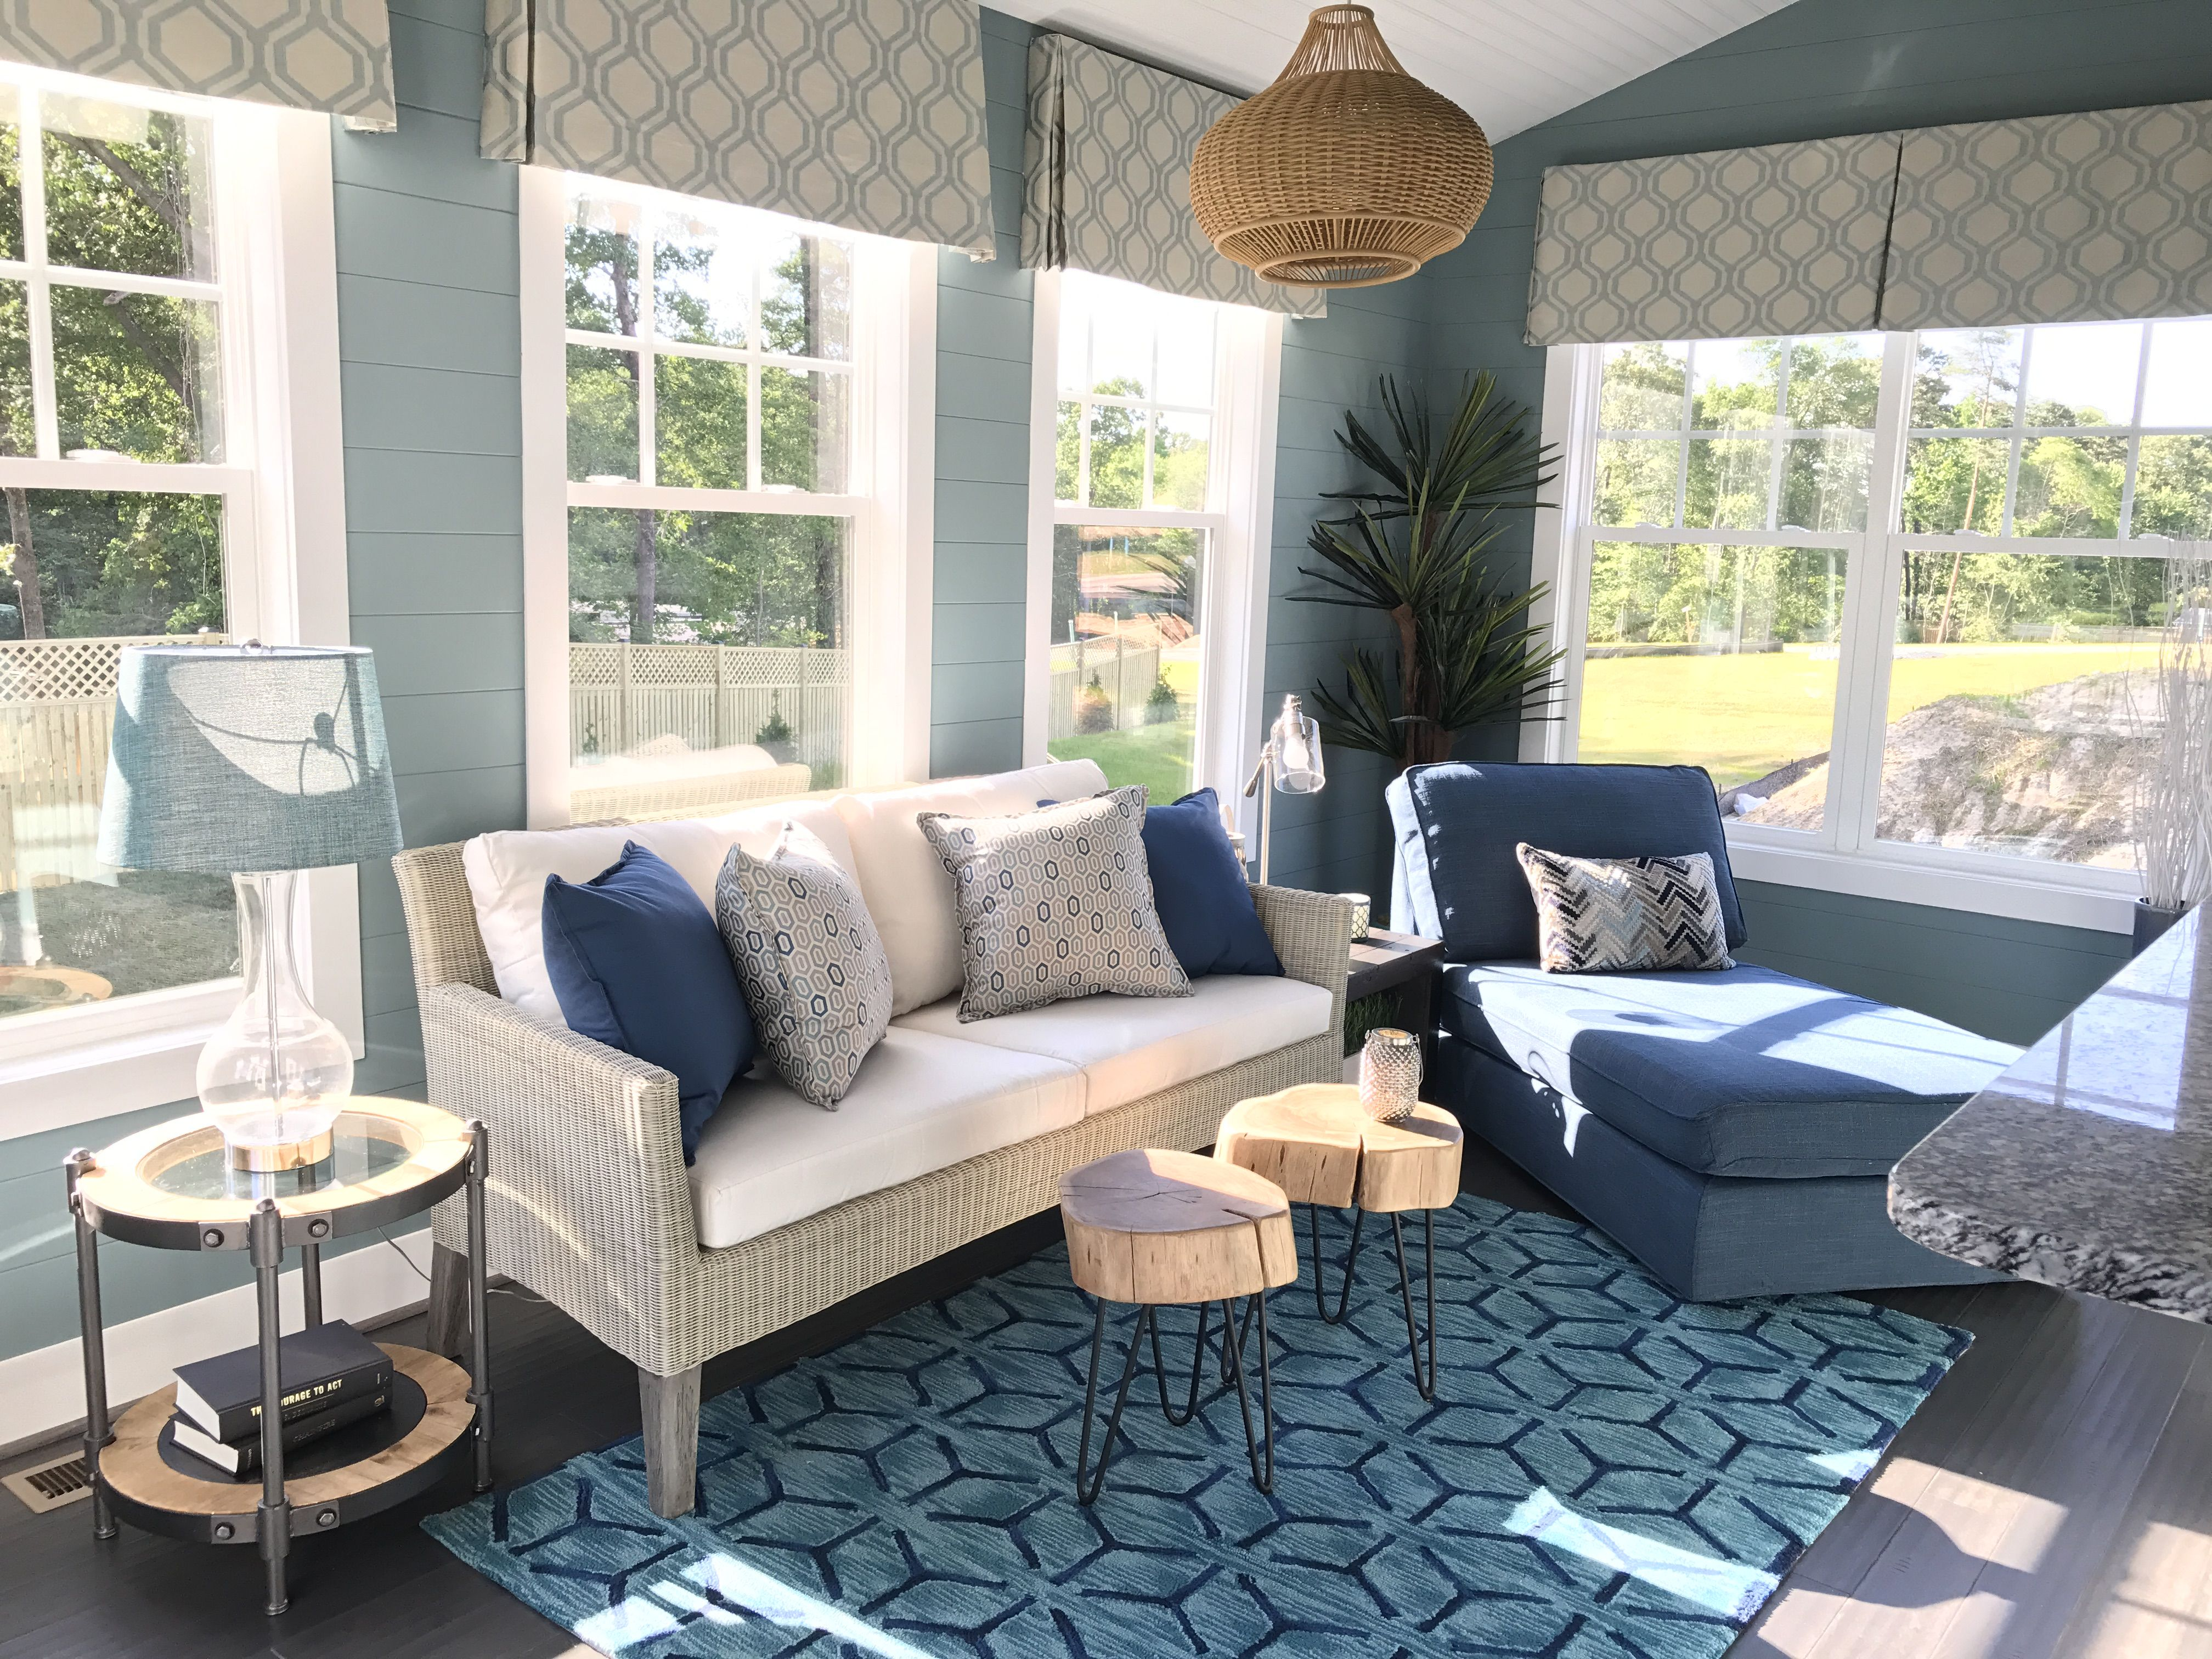 Fabulous A Model Home With A Calming Blue Sunroom Forskolin Free Trial Chair Design Images Forskolin Free Trialorg